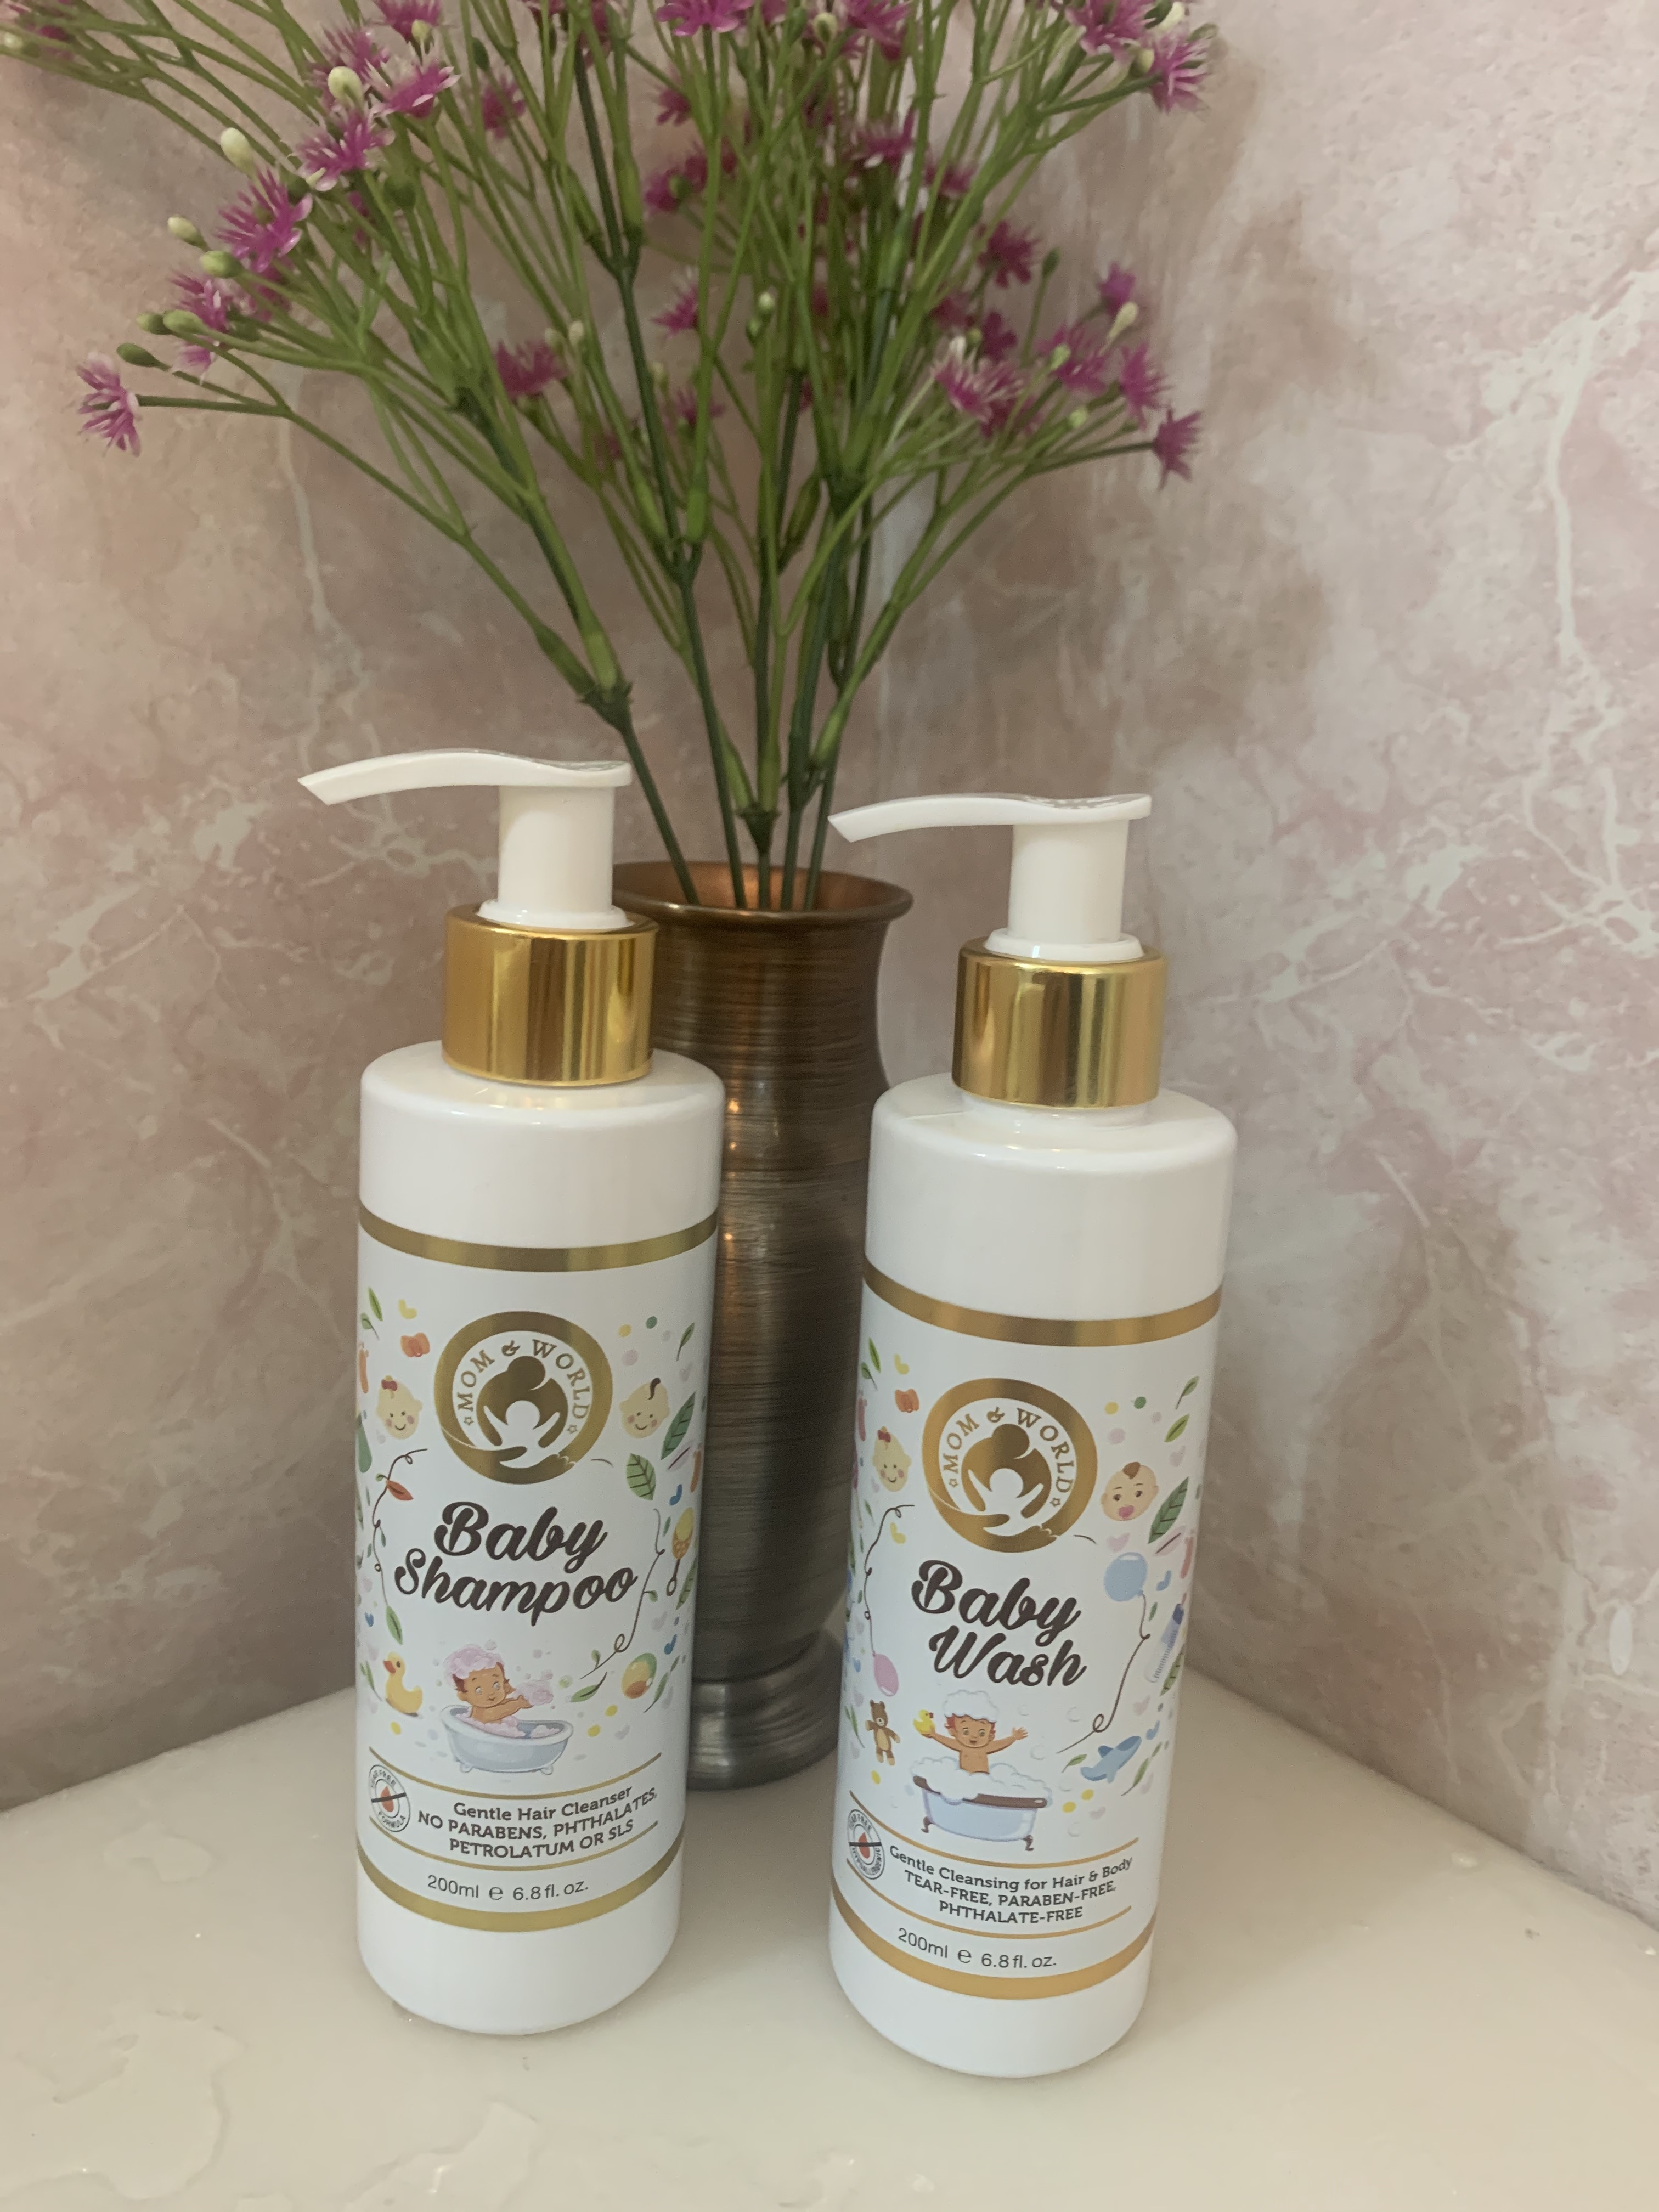 Mom & World Baby Wash - Tear Free Gentle Cleansing For Hair & Body-Very gentle and naturally made-By saniyachawla